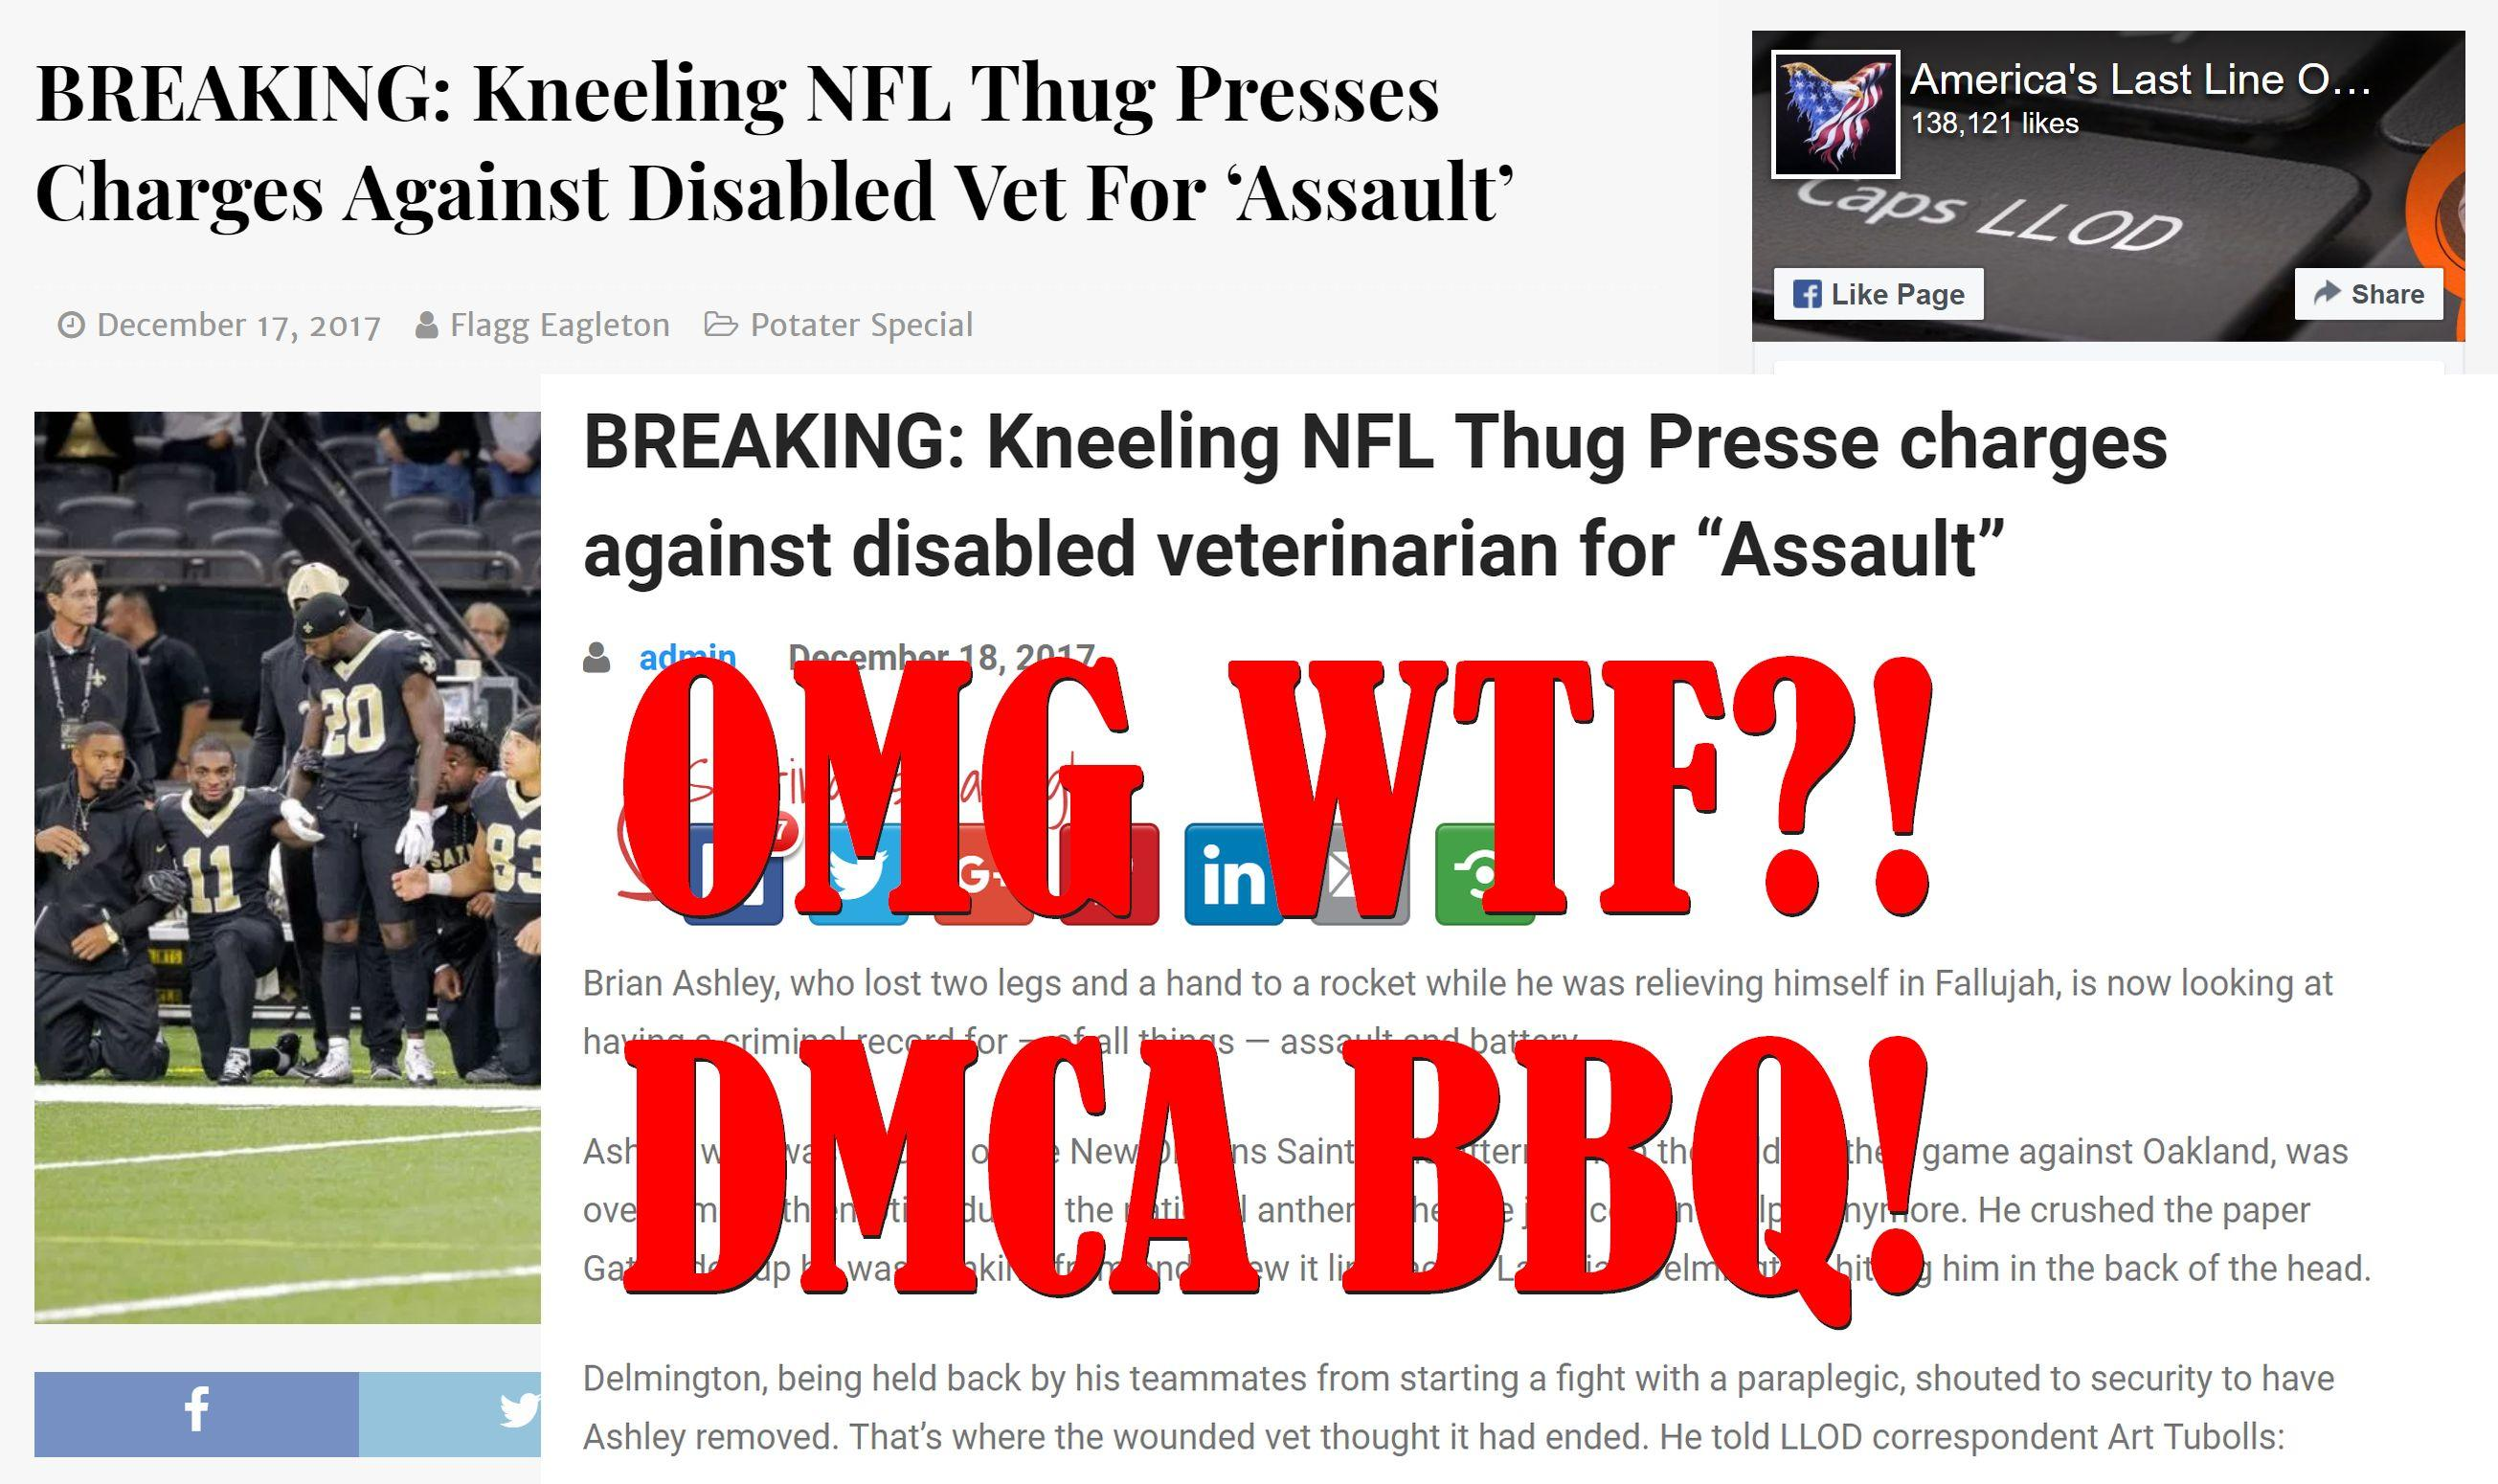 Christopher Blair Sends DMCA Takedown To Fake News Website Conservative Stamp, Hilarity Ensues